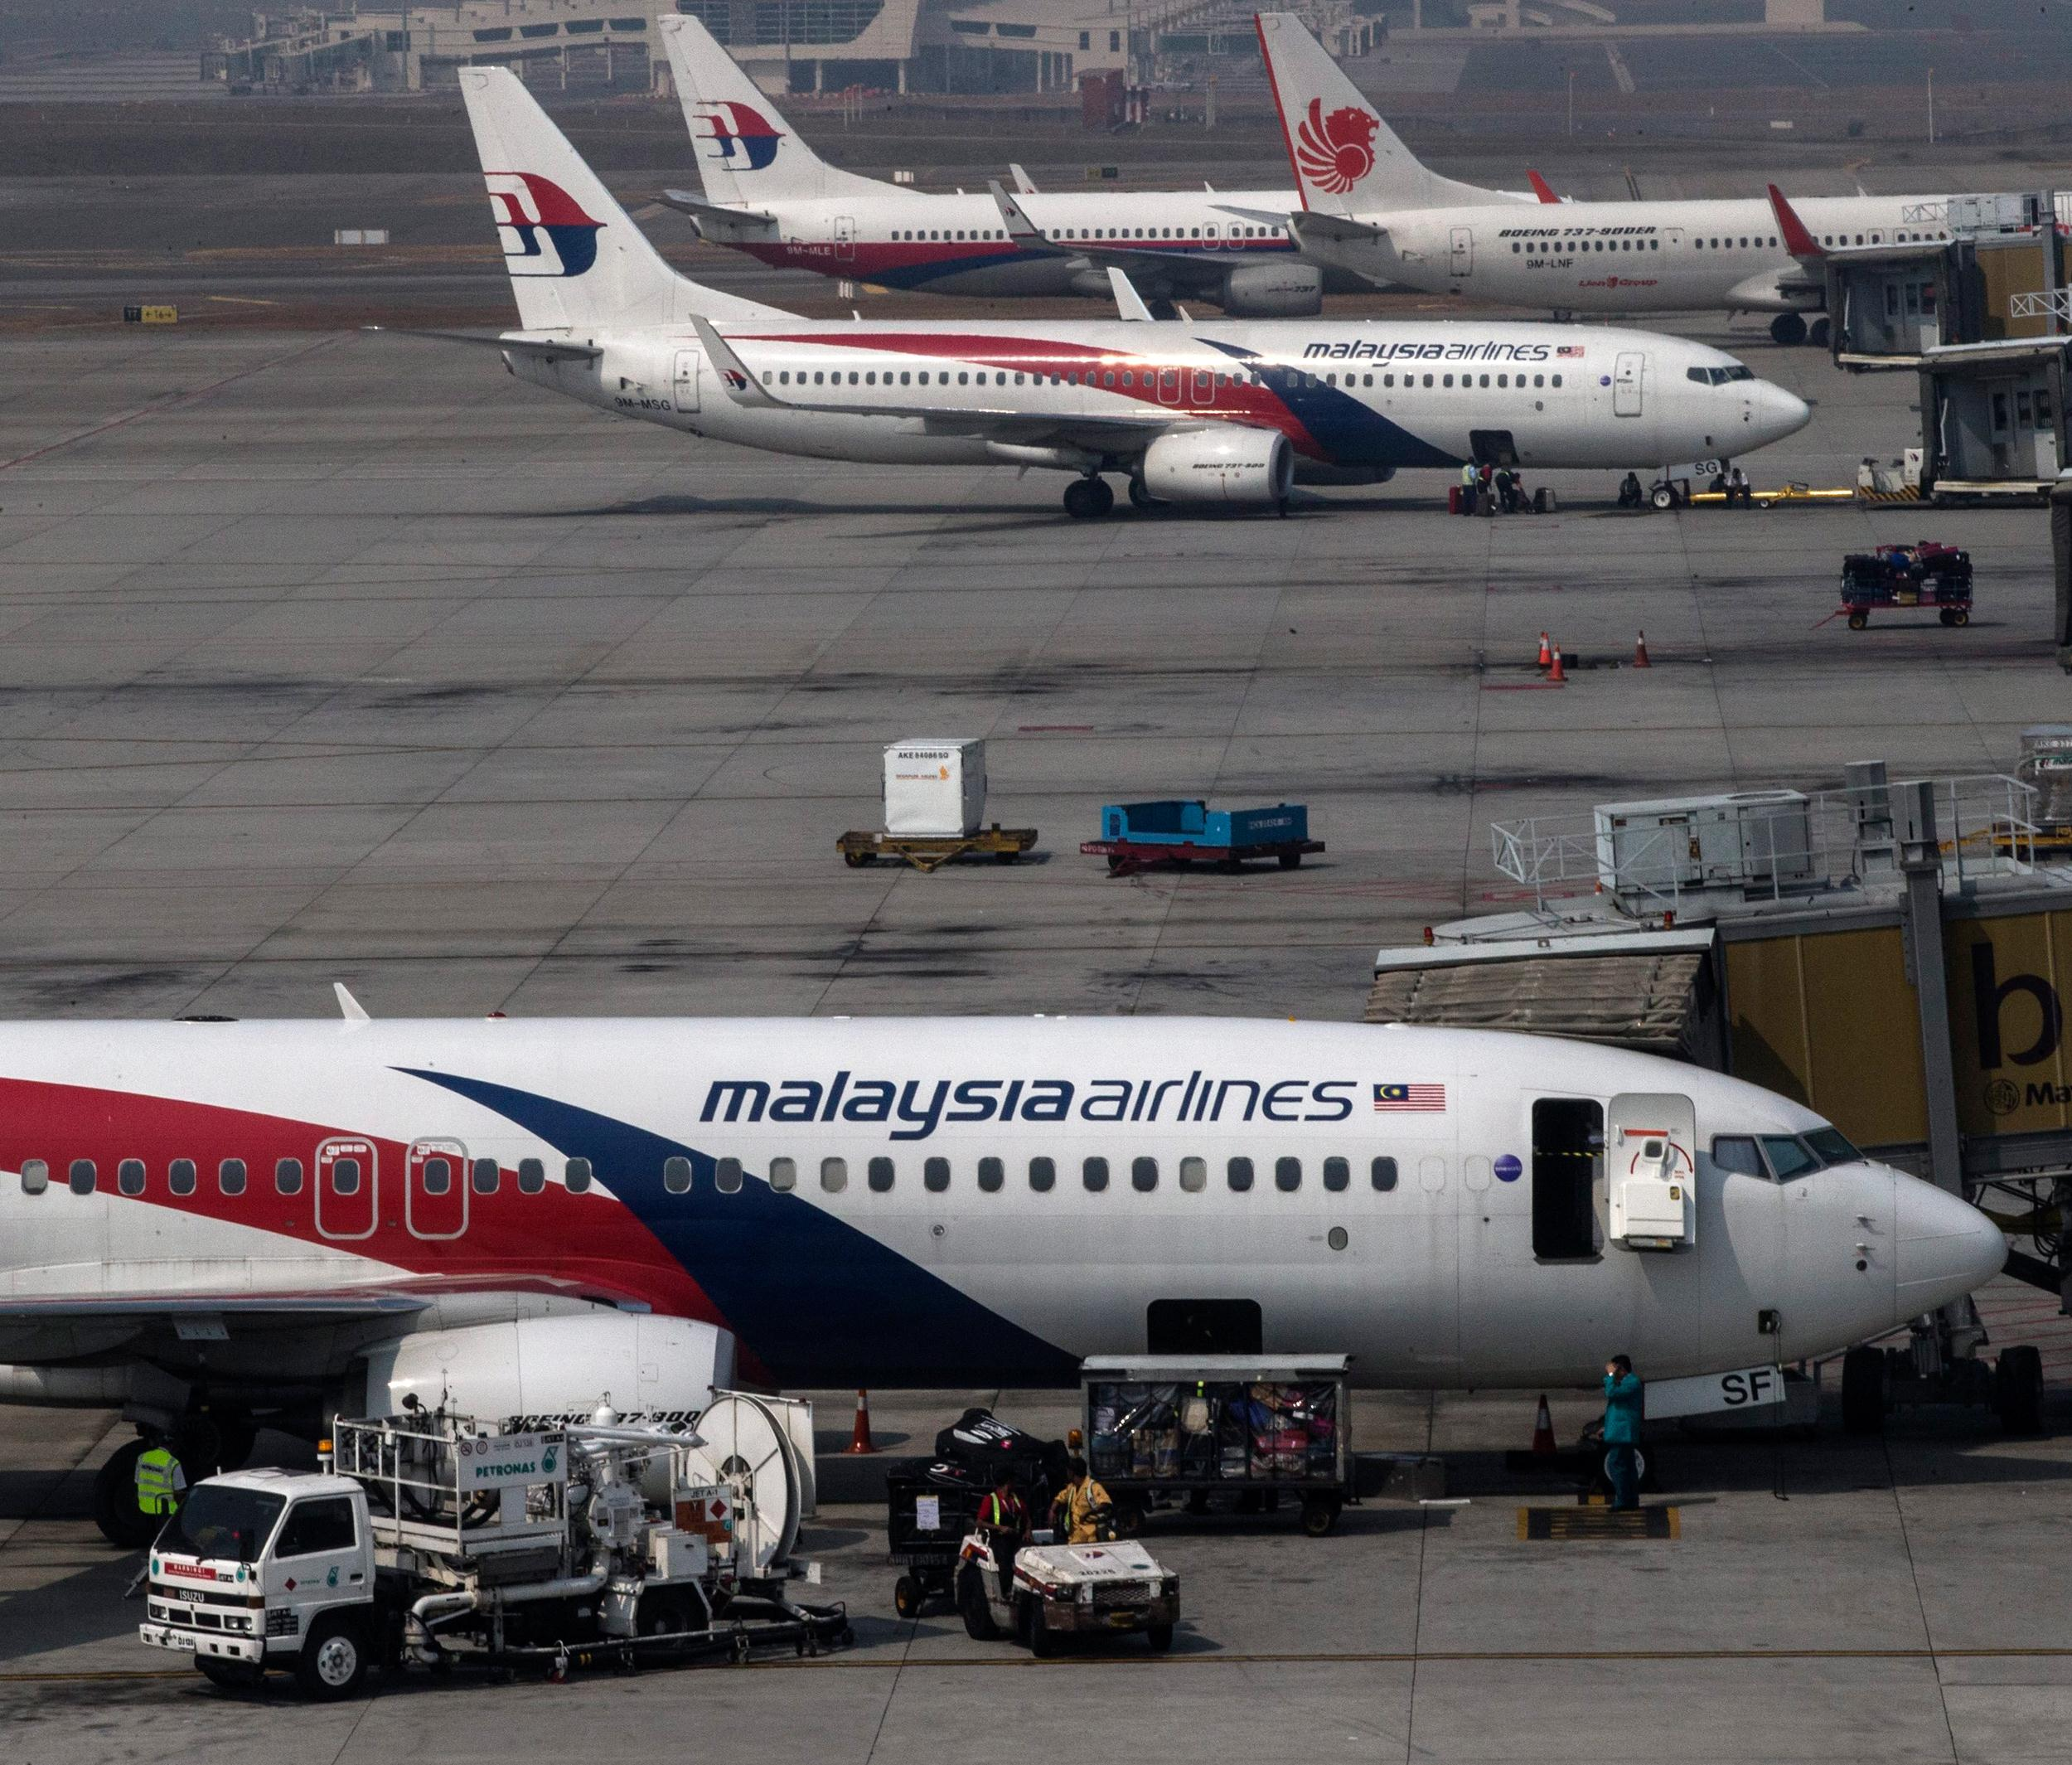 Image: Malaysian Airlines airplanes are parked at gates at Kuala Lumpur International Airport on March 9.